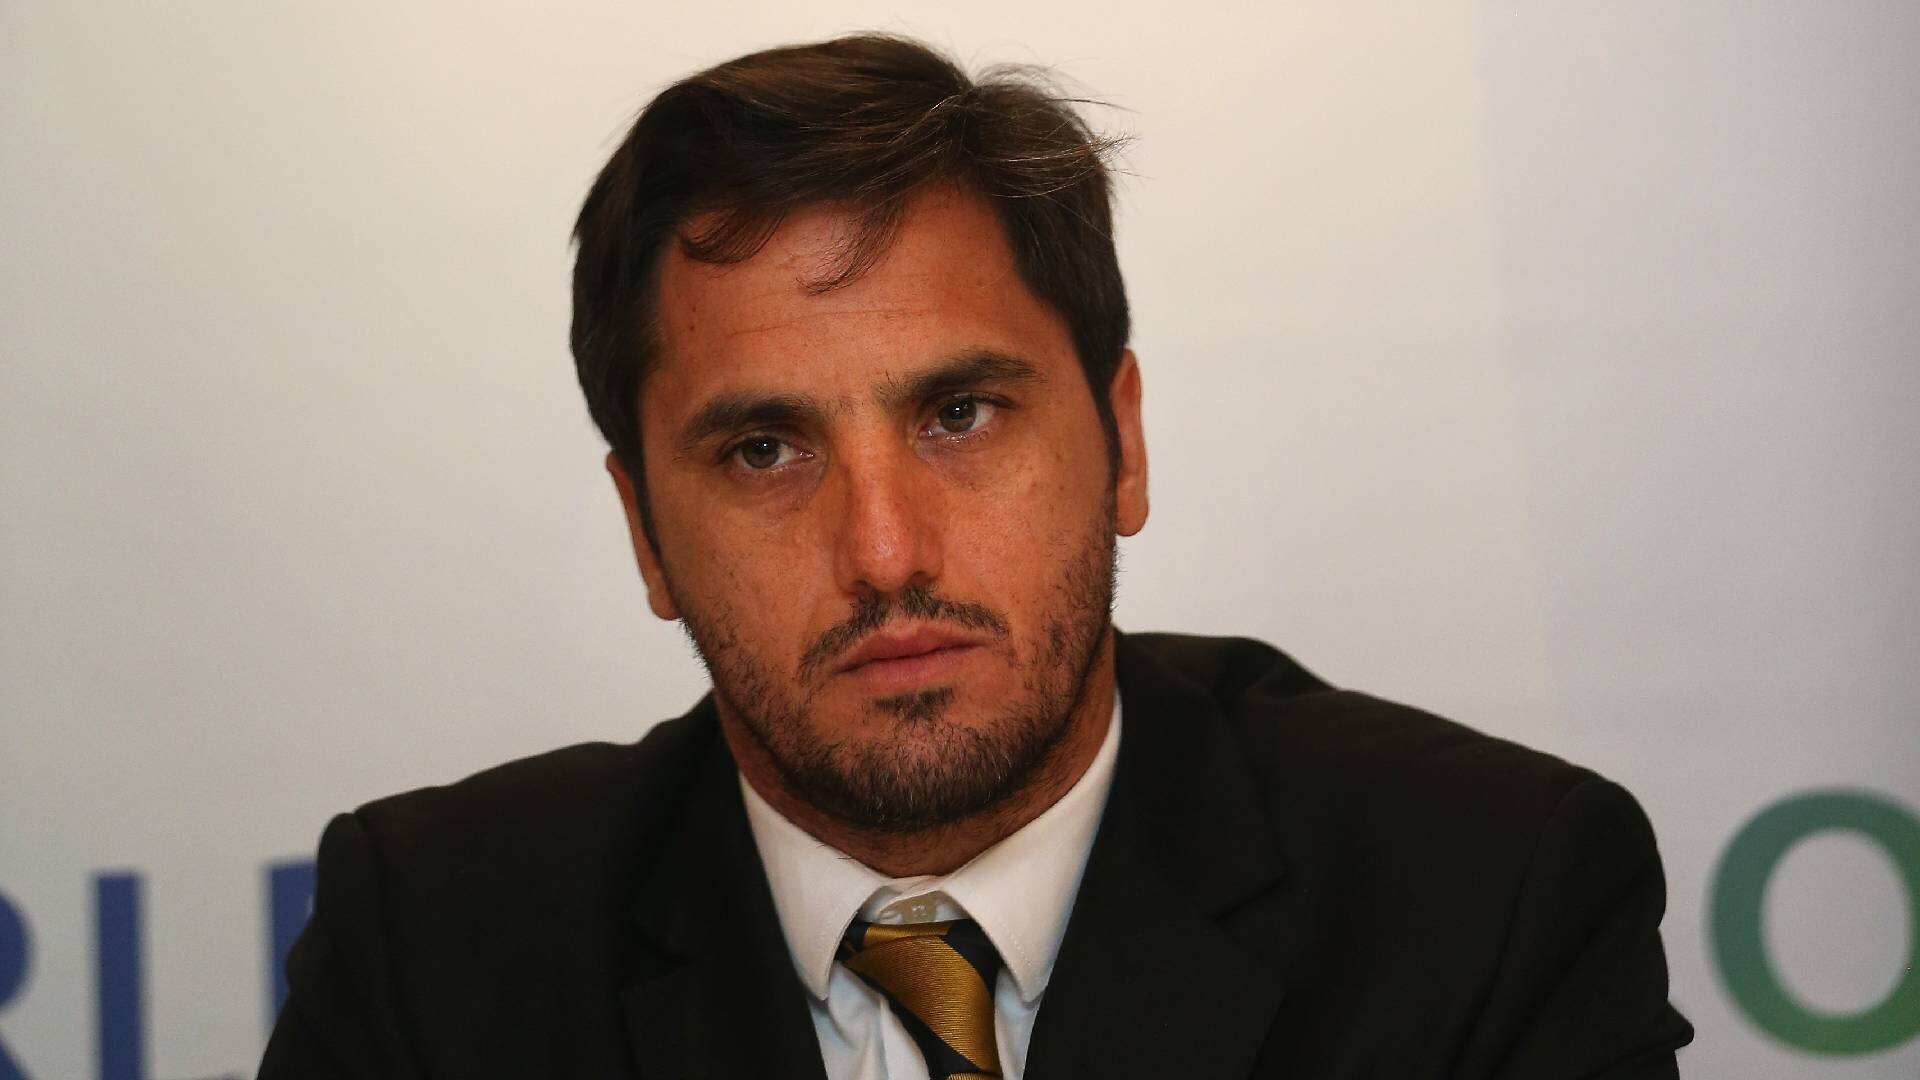 Agustin Pichot claims he was betrayed in World Rugby chairman vote